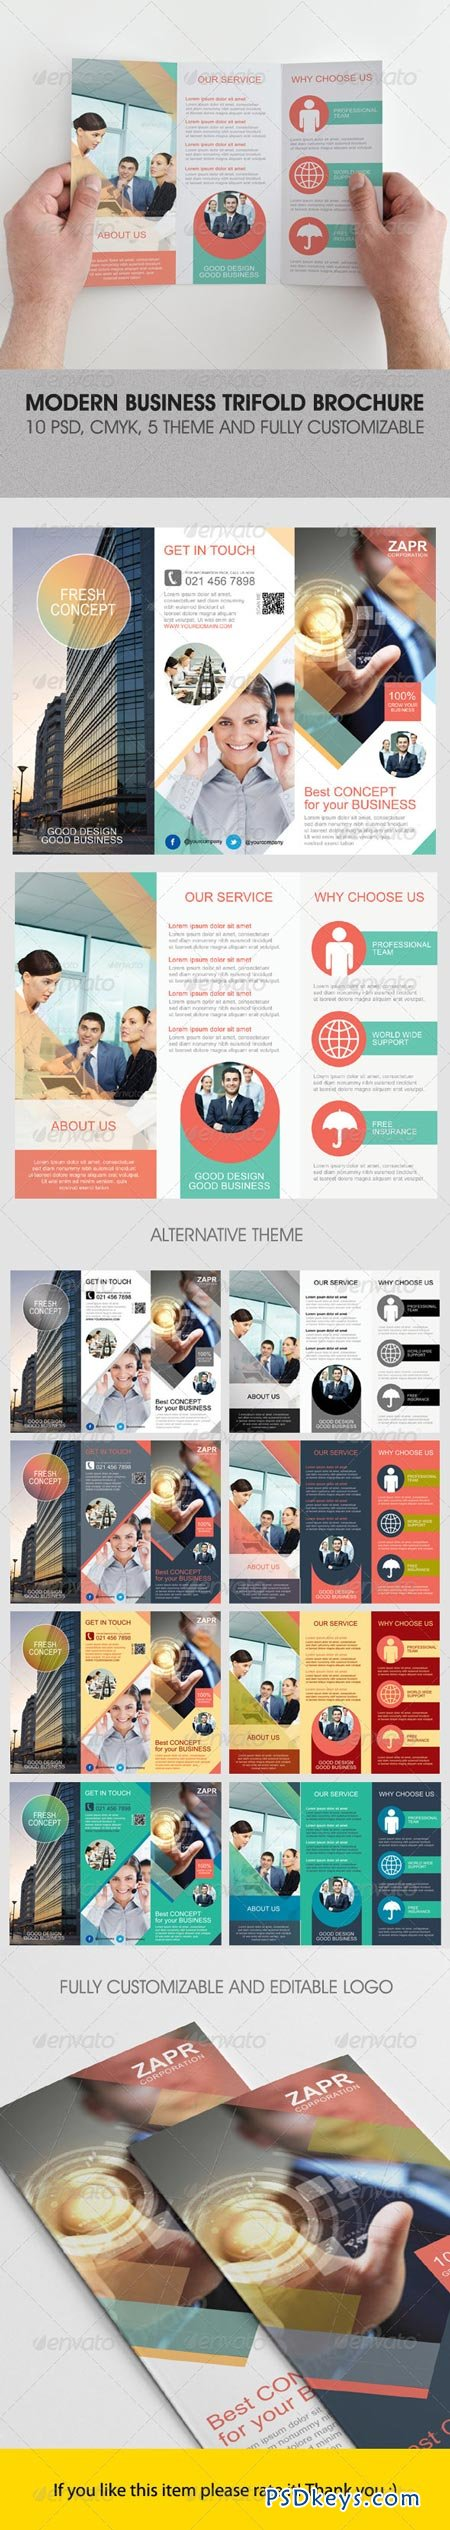 Modern Business Trifold Brochure 4823364